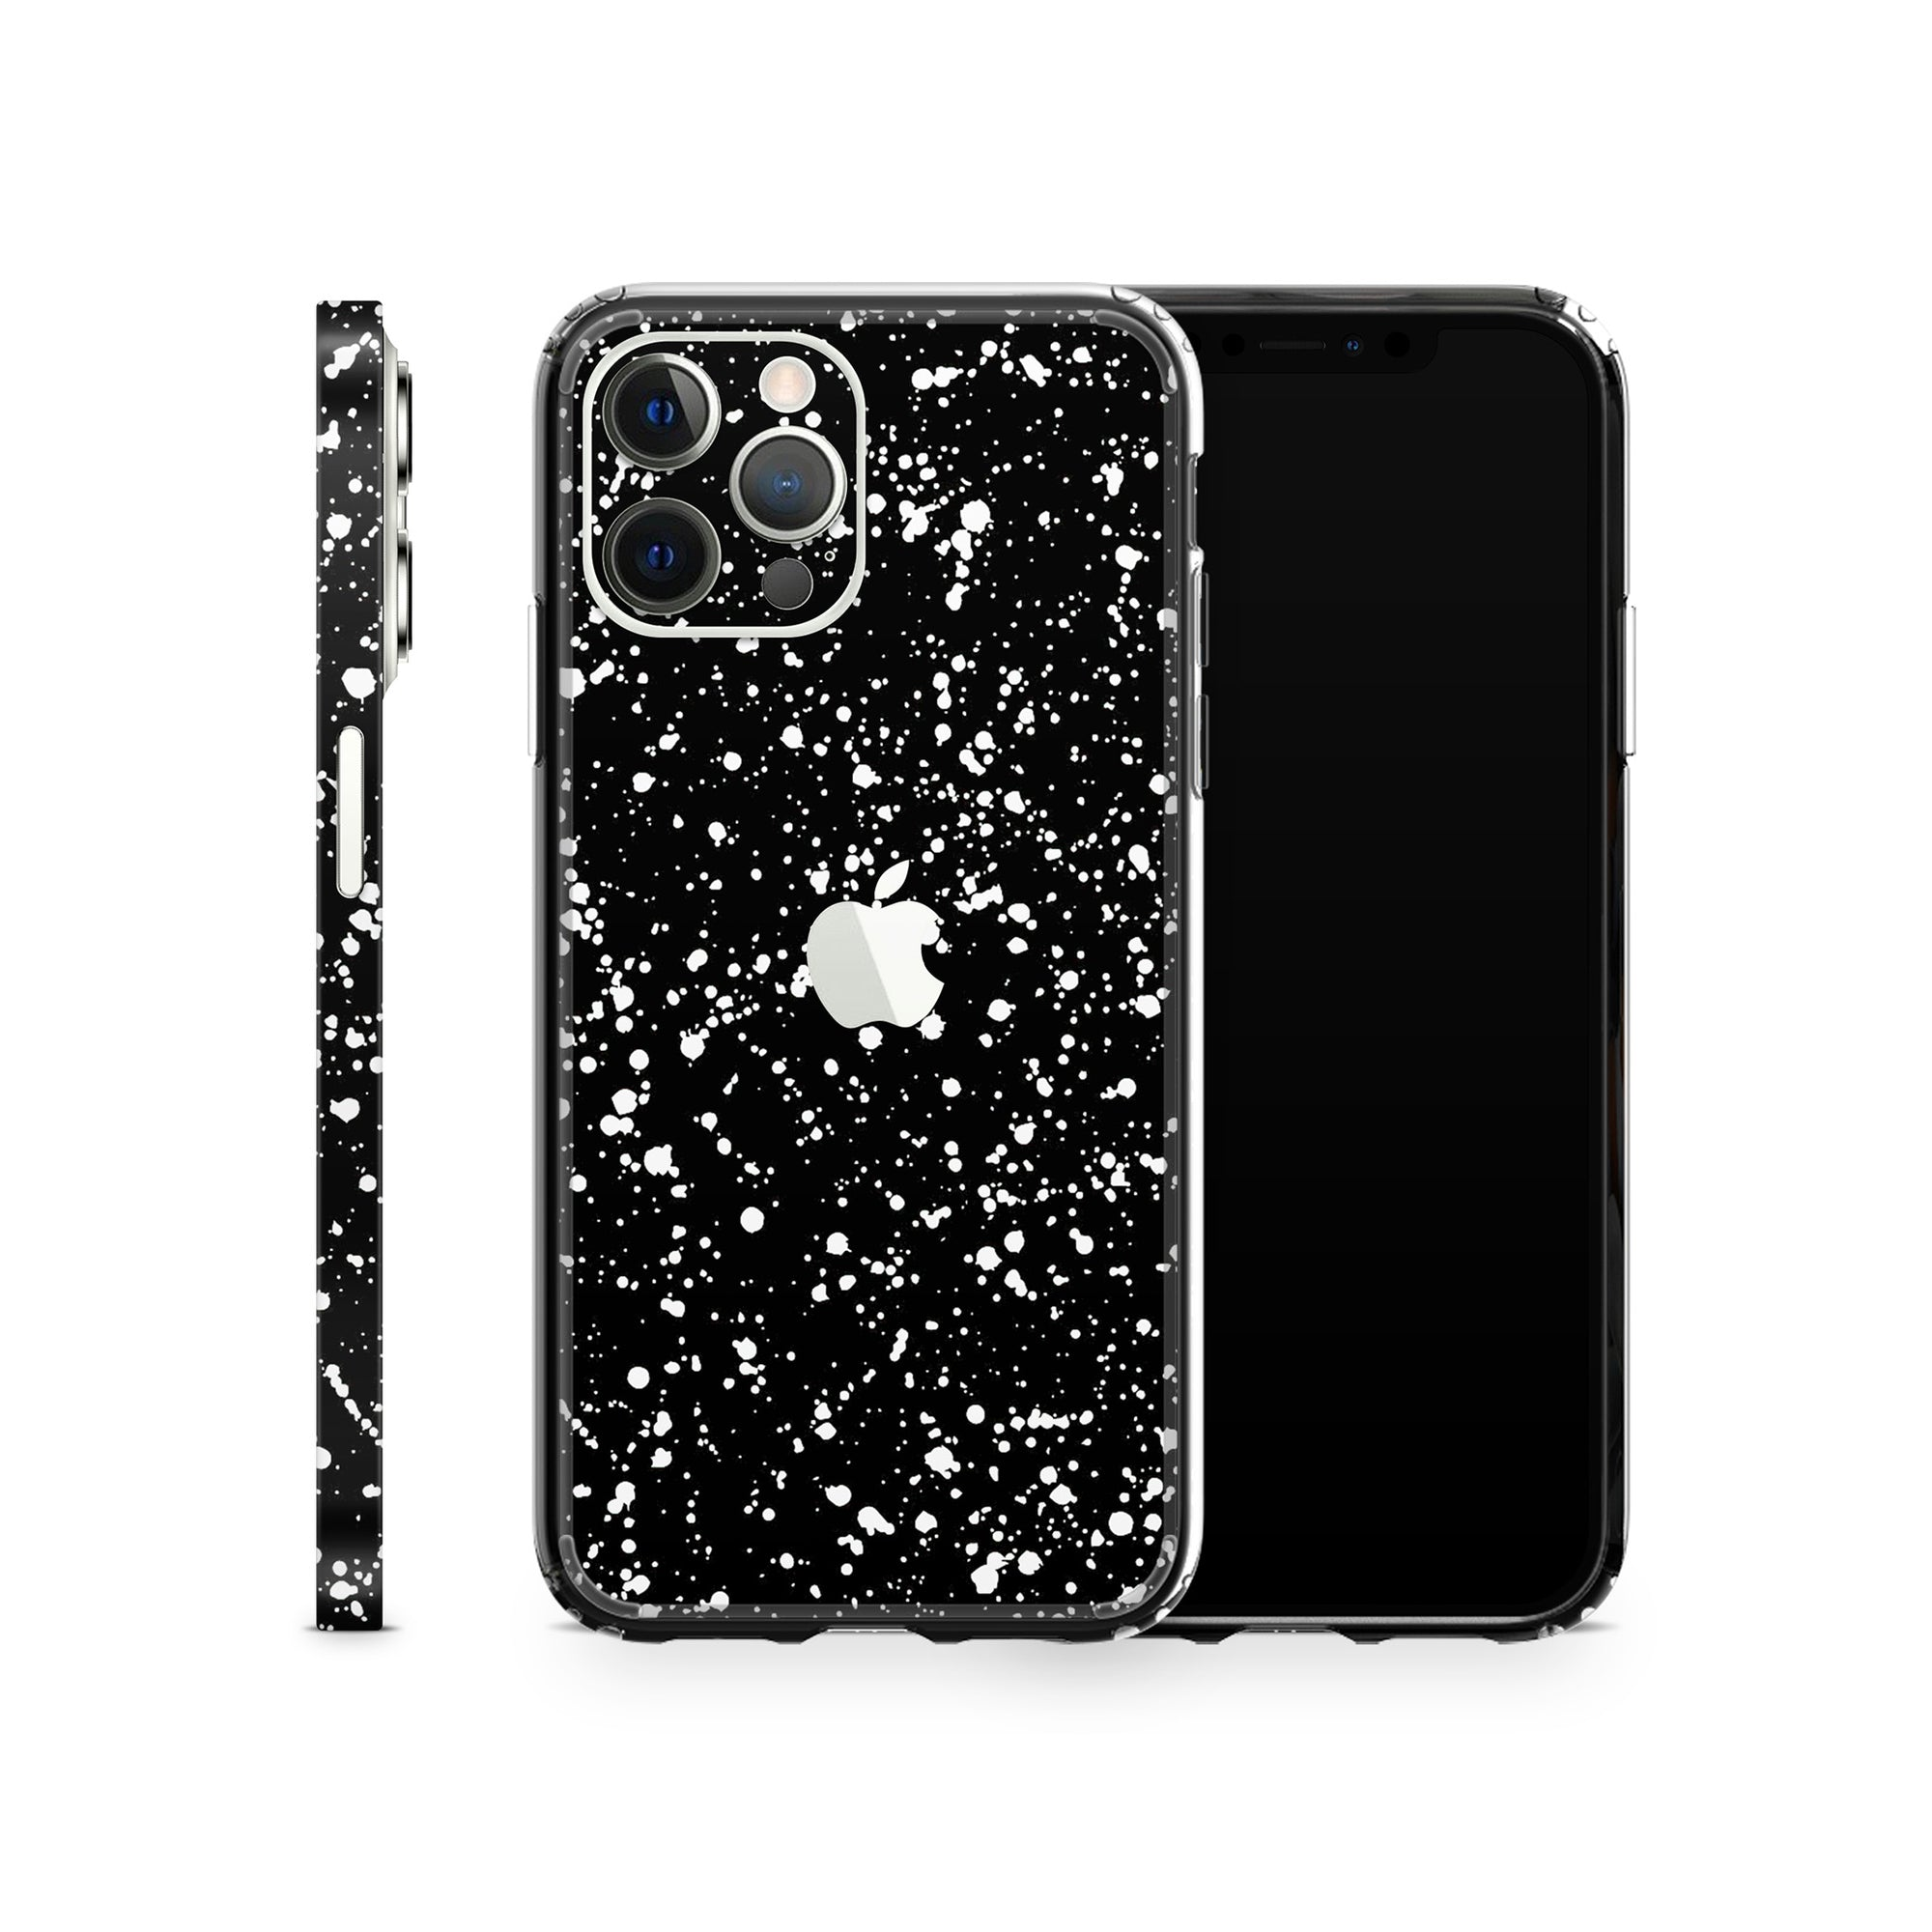 iPhone Case 12 Pro Max Black Speckle